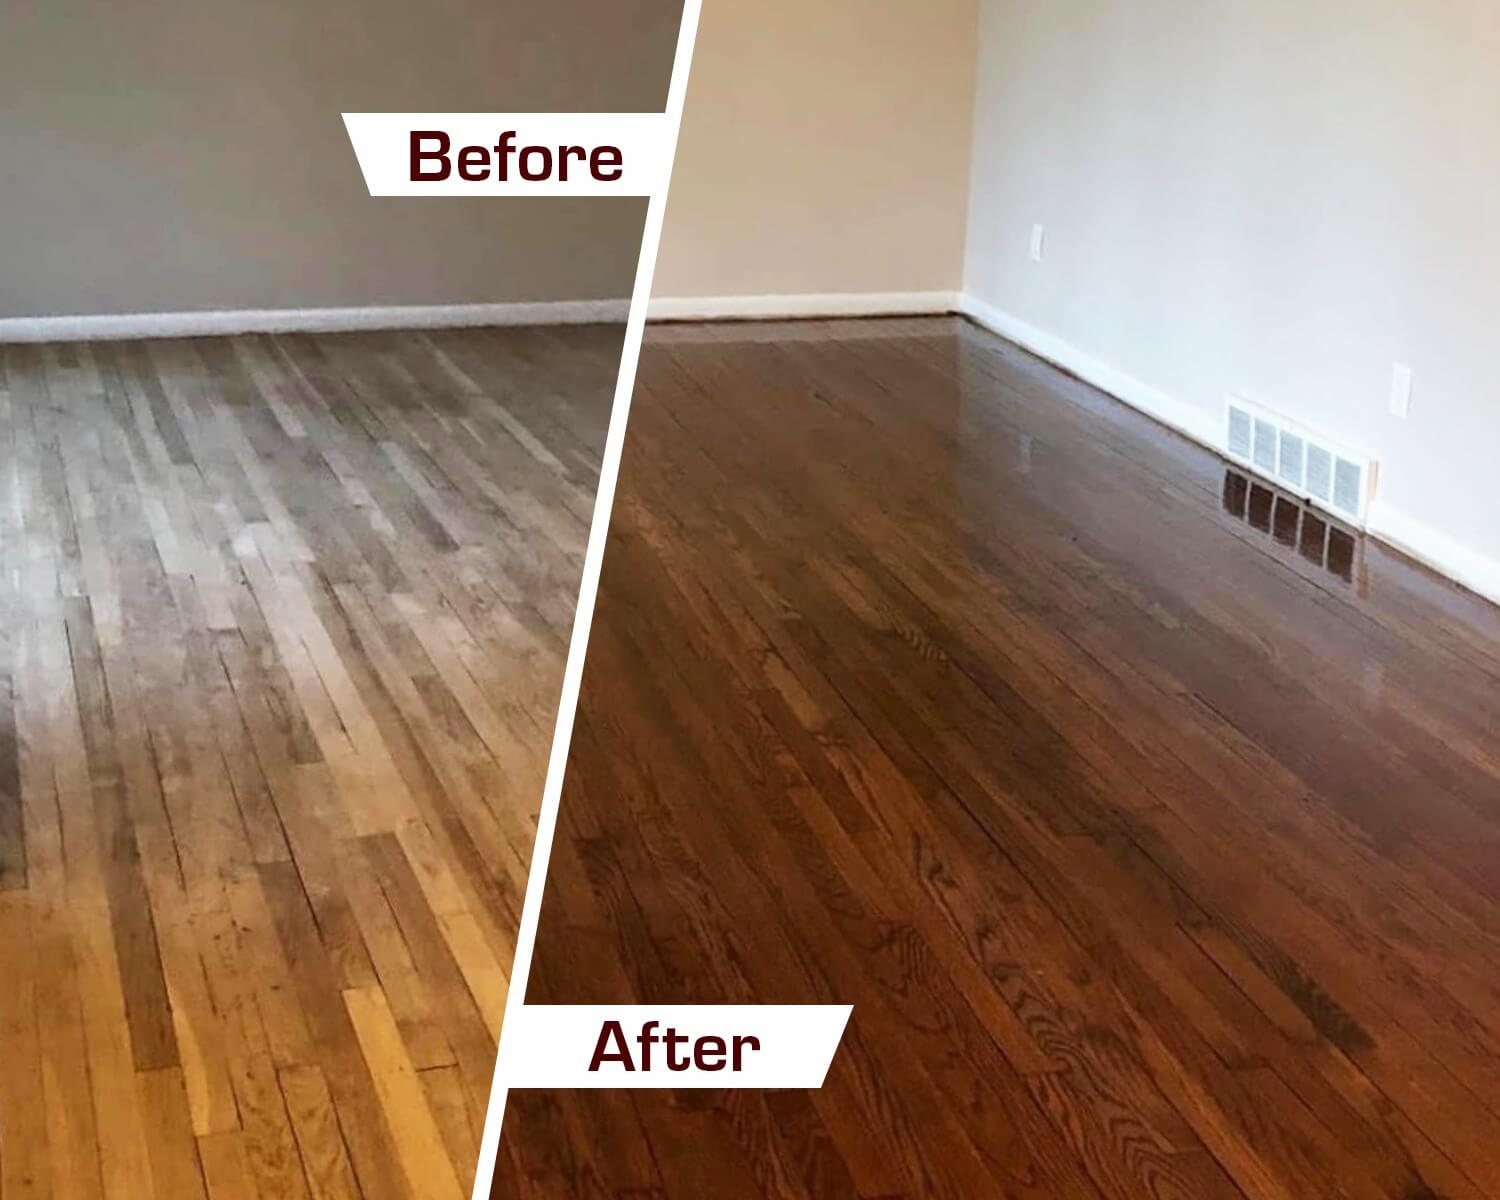 Before and after wood floor refinishing in Birmingham, AL